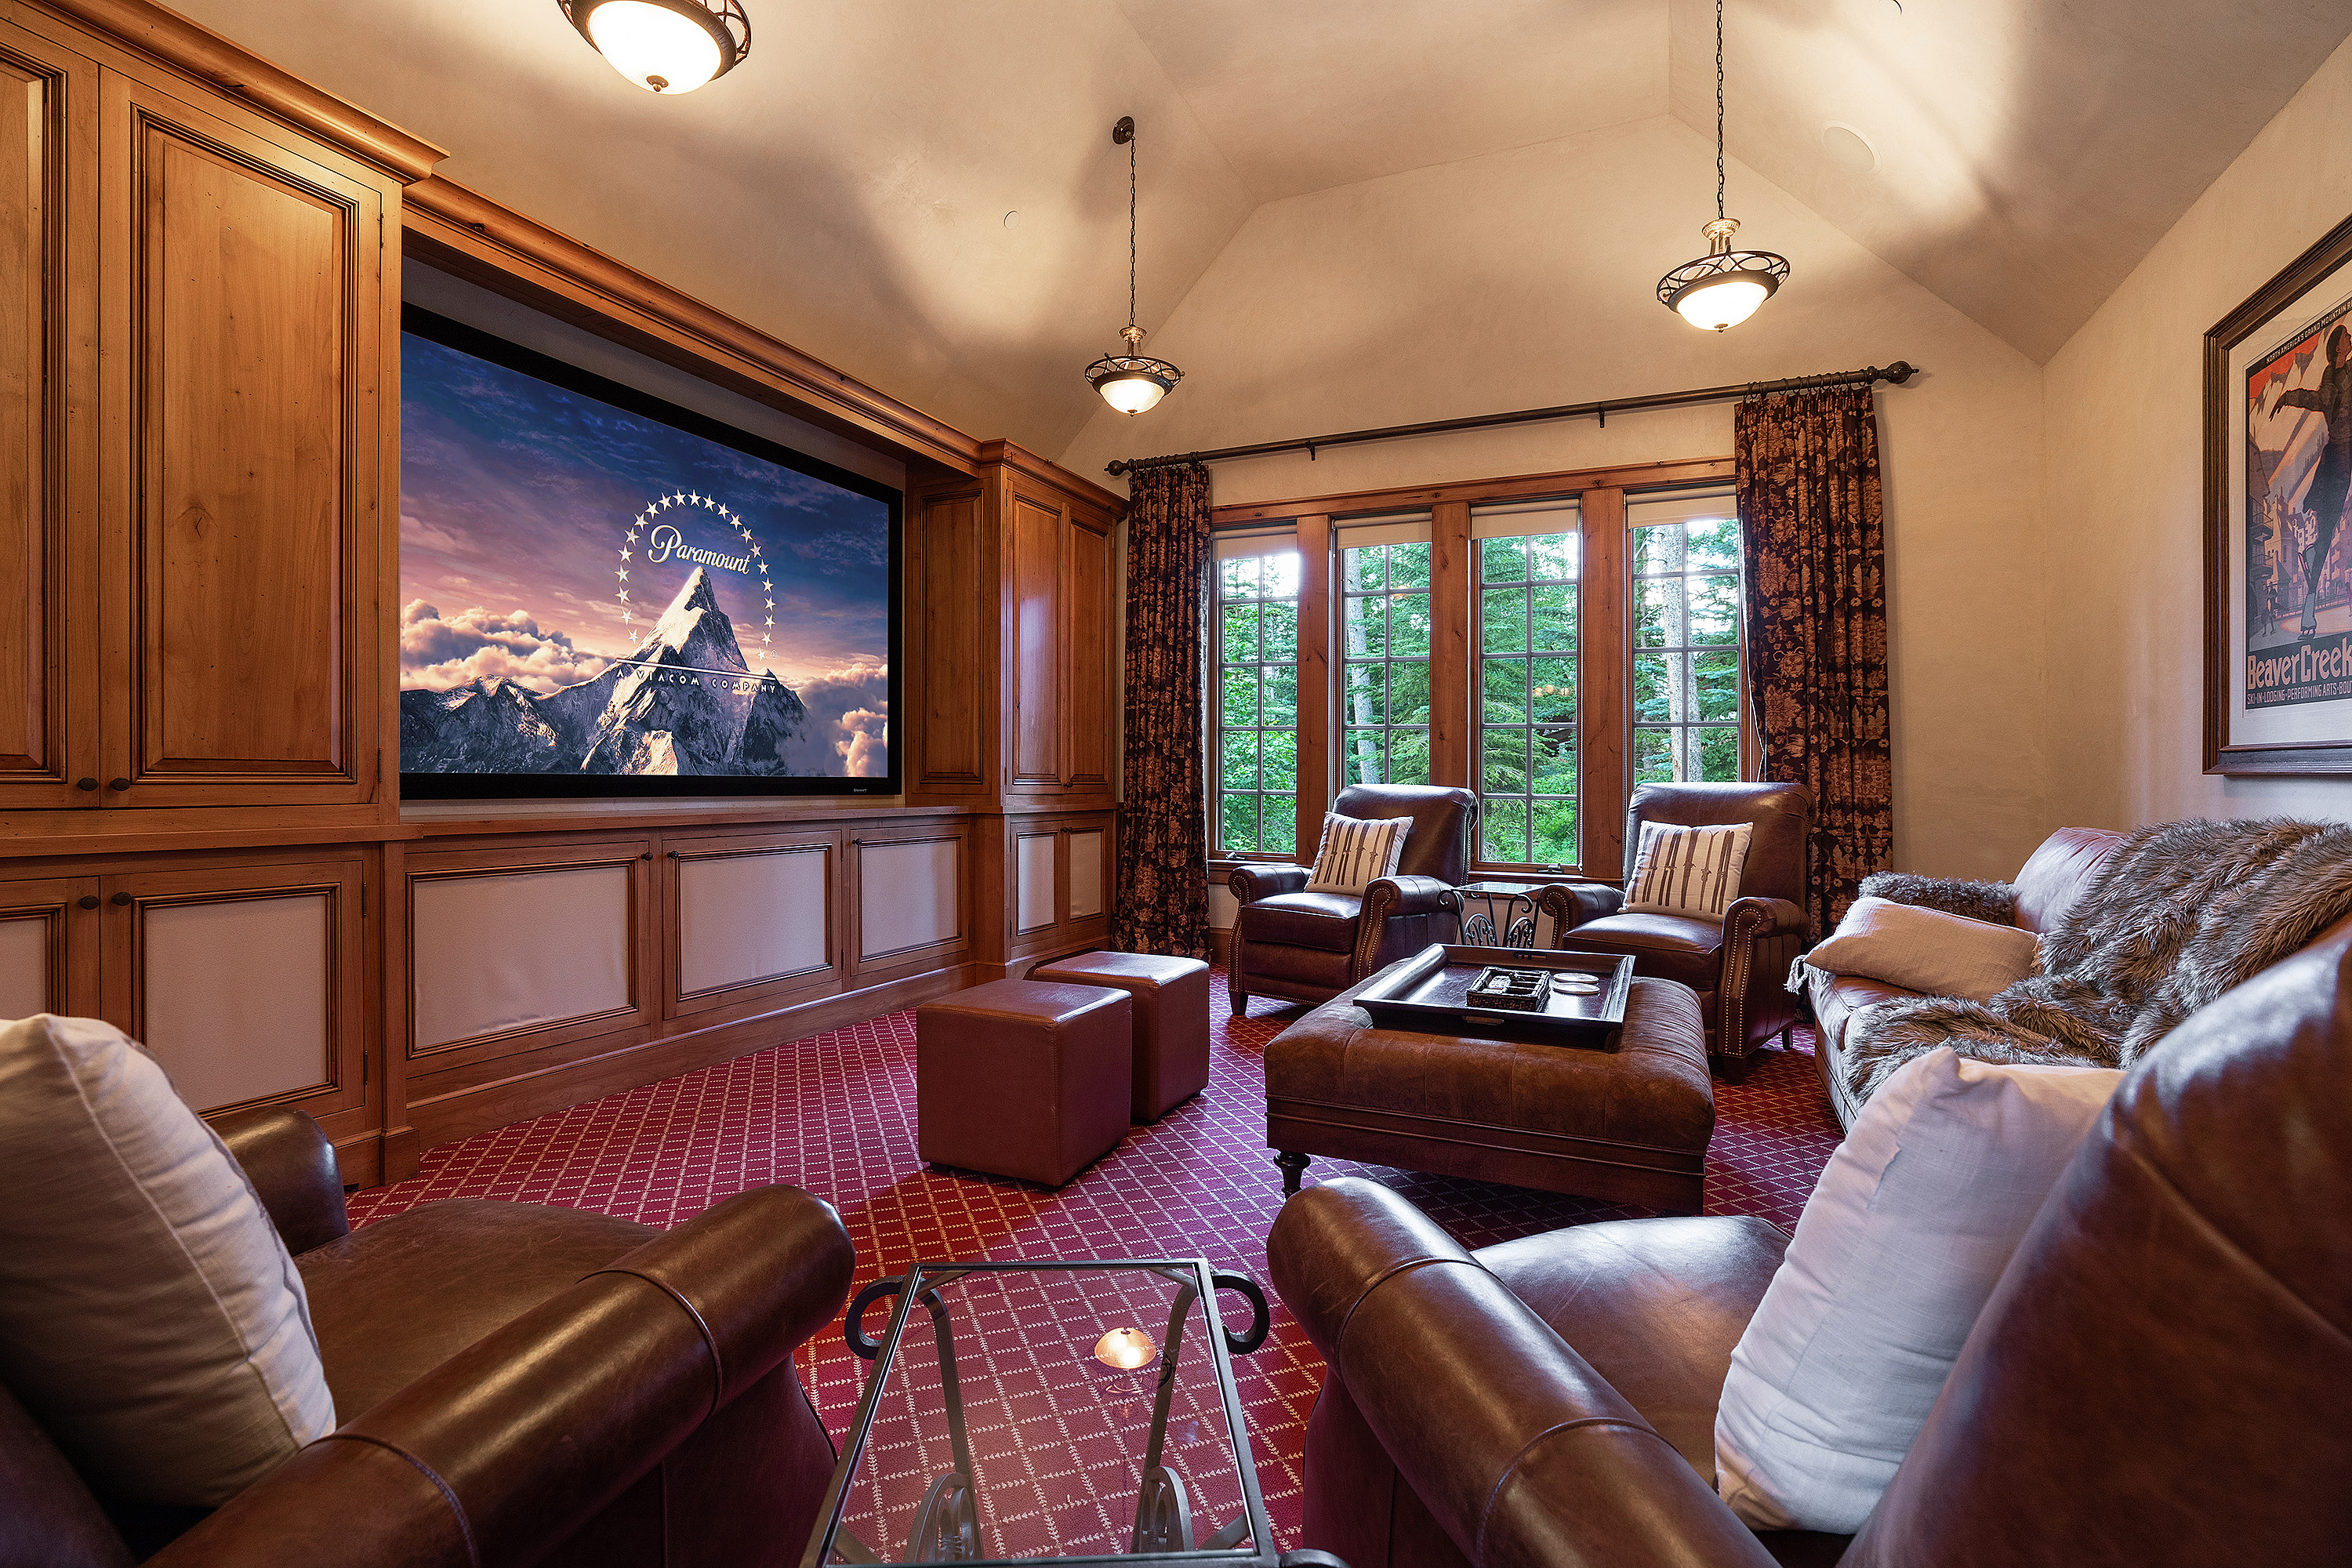 Long ski days call for hot chocolate and a cozy movie in this custom designed theatre.